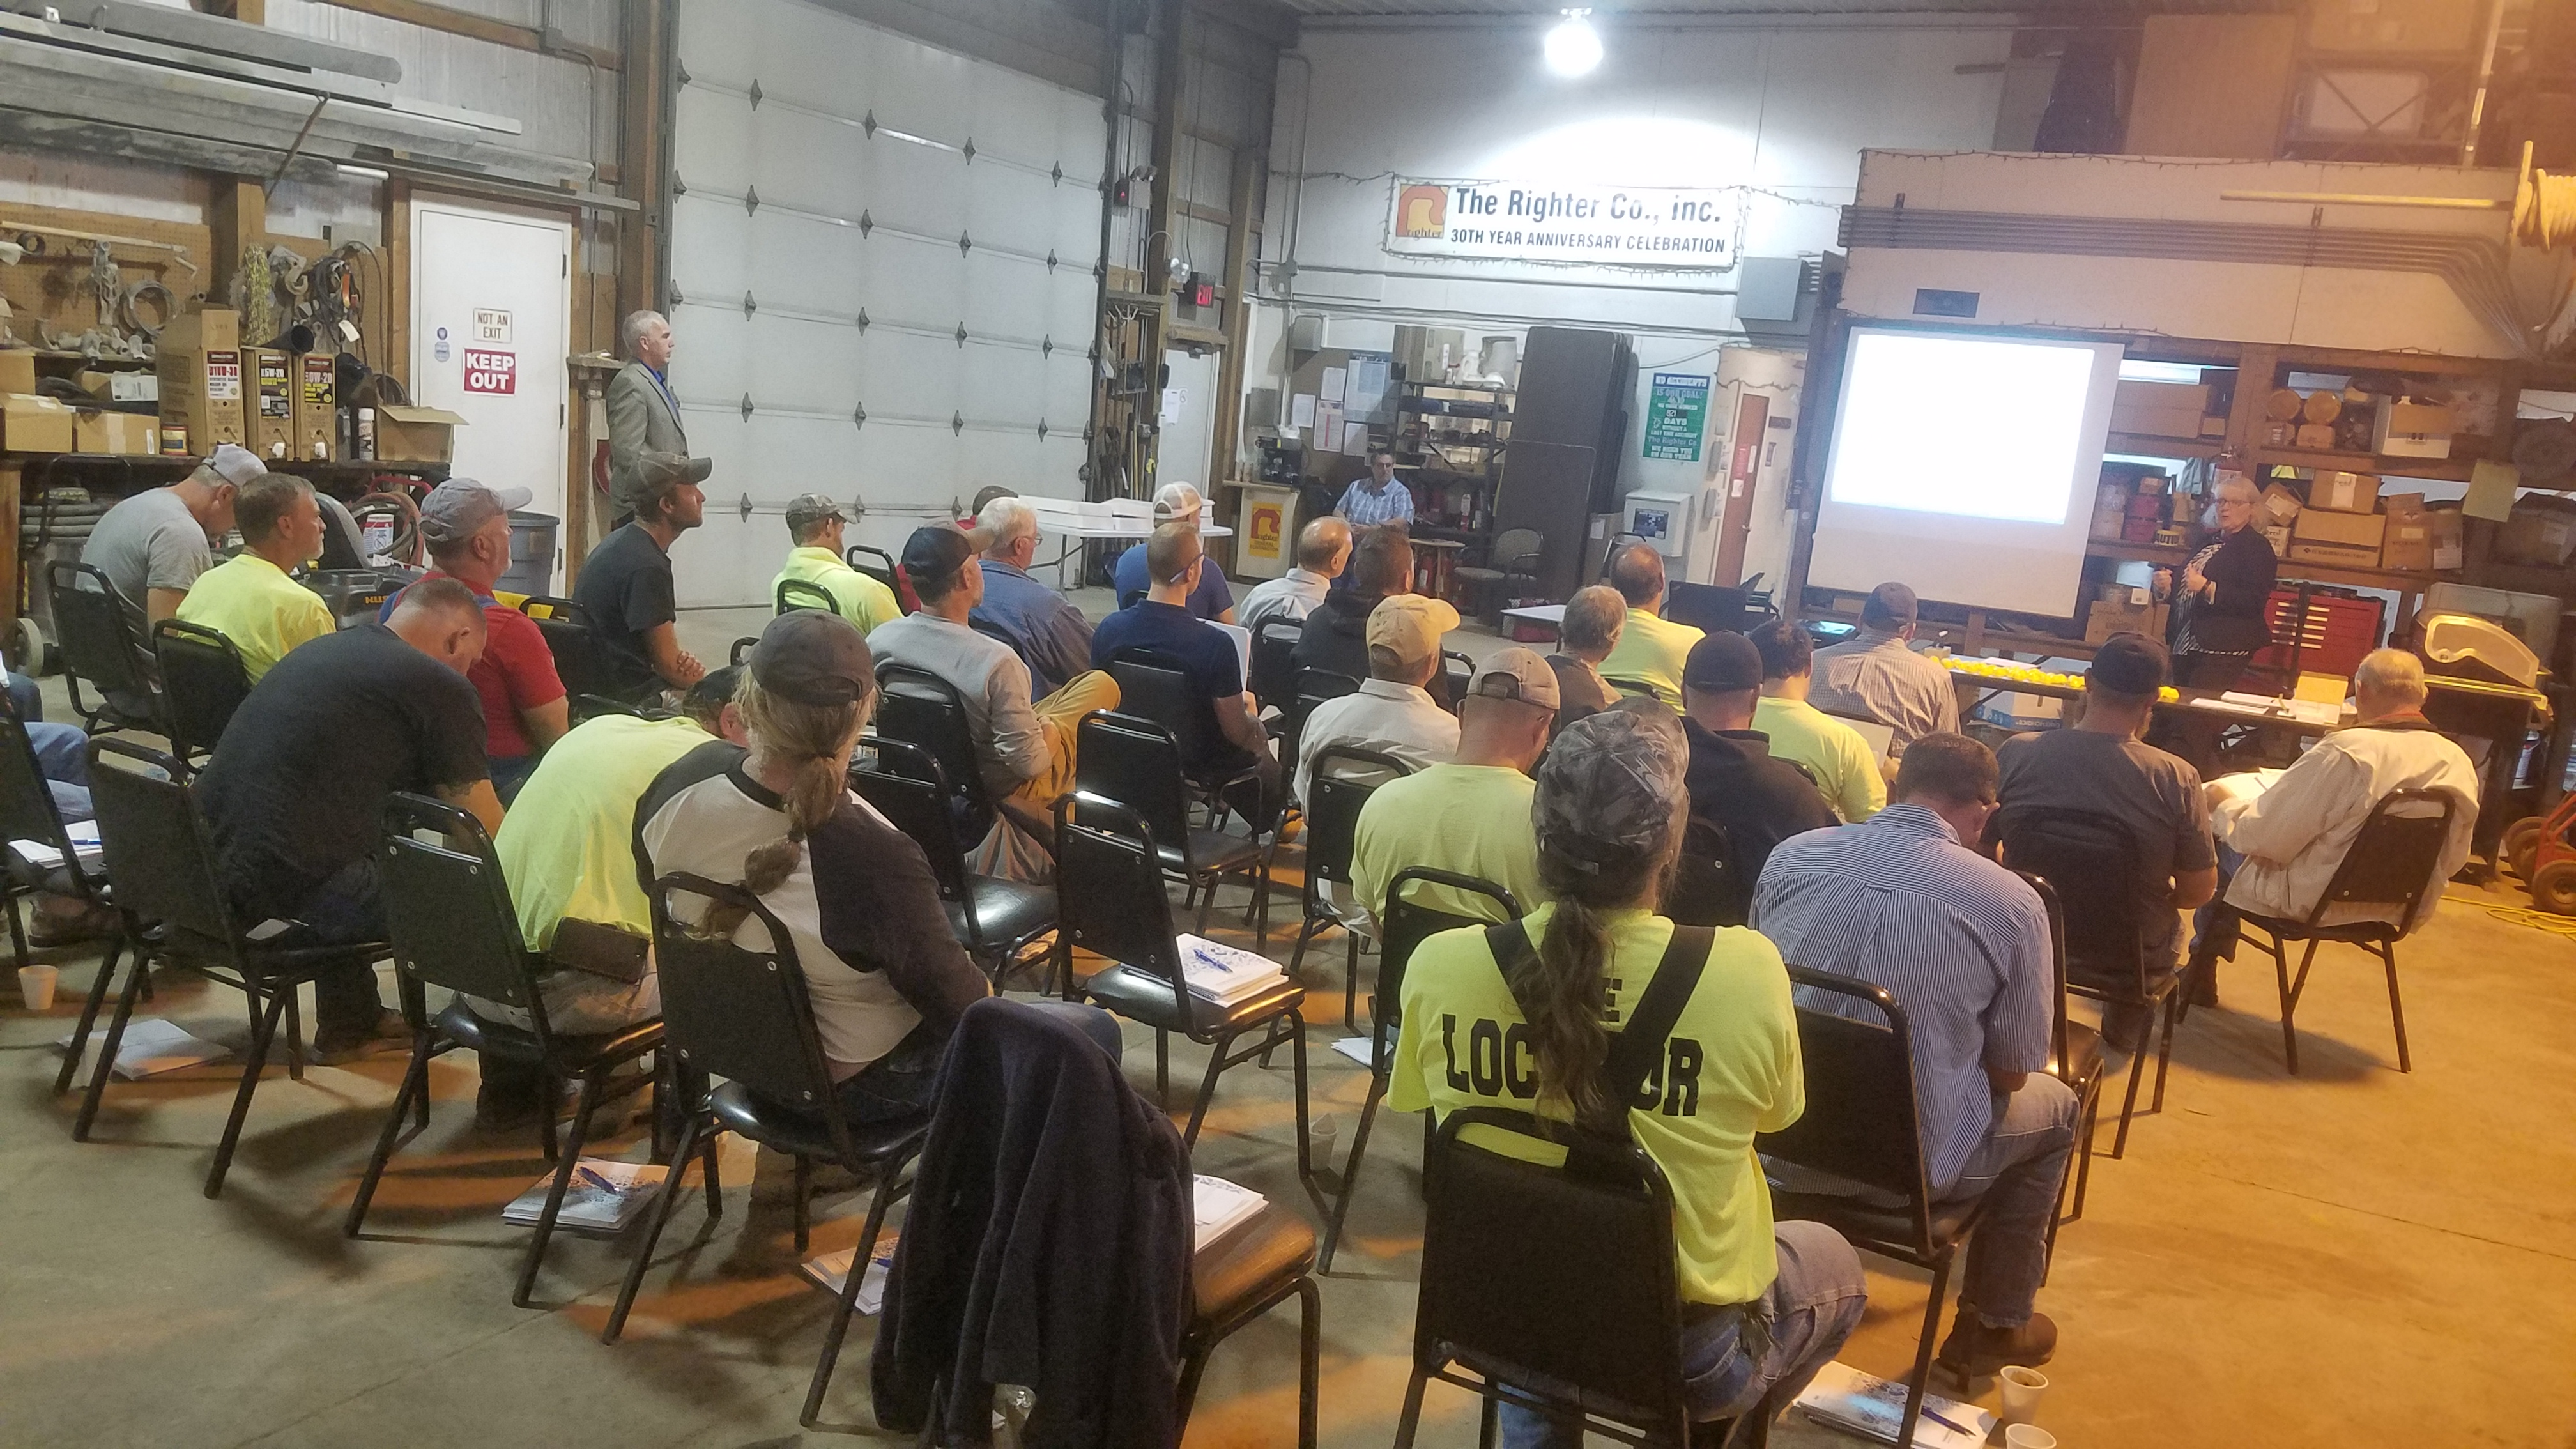 Righter s Annual All Employee Meeting – The Righter pany